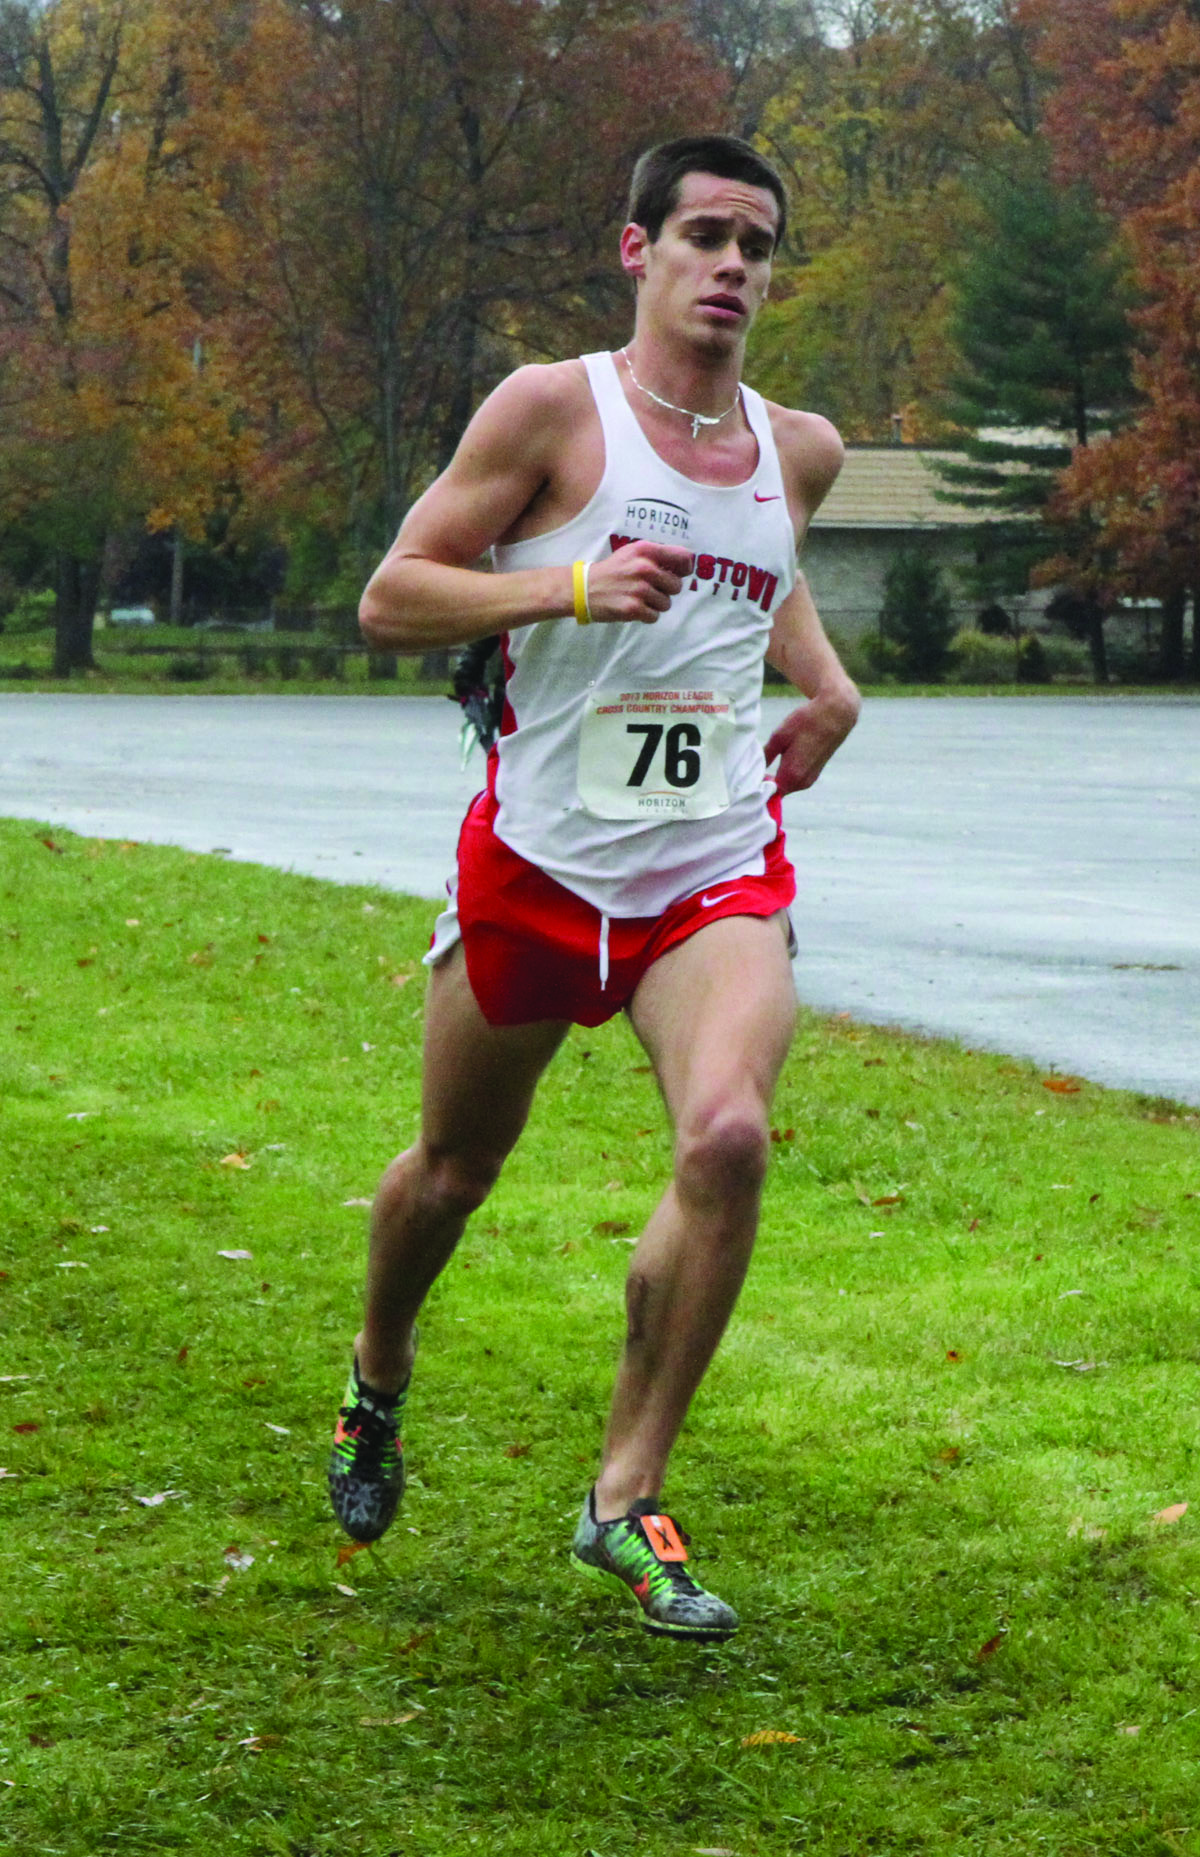 Austin McLean finished 12th at the Disney Cross Country Classic last year, helping the YSU men finish second in the event.